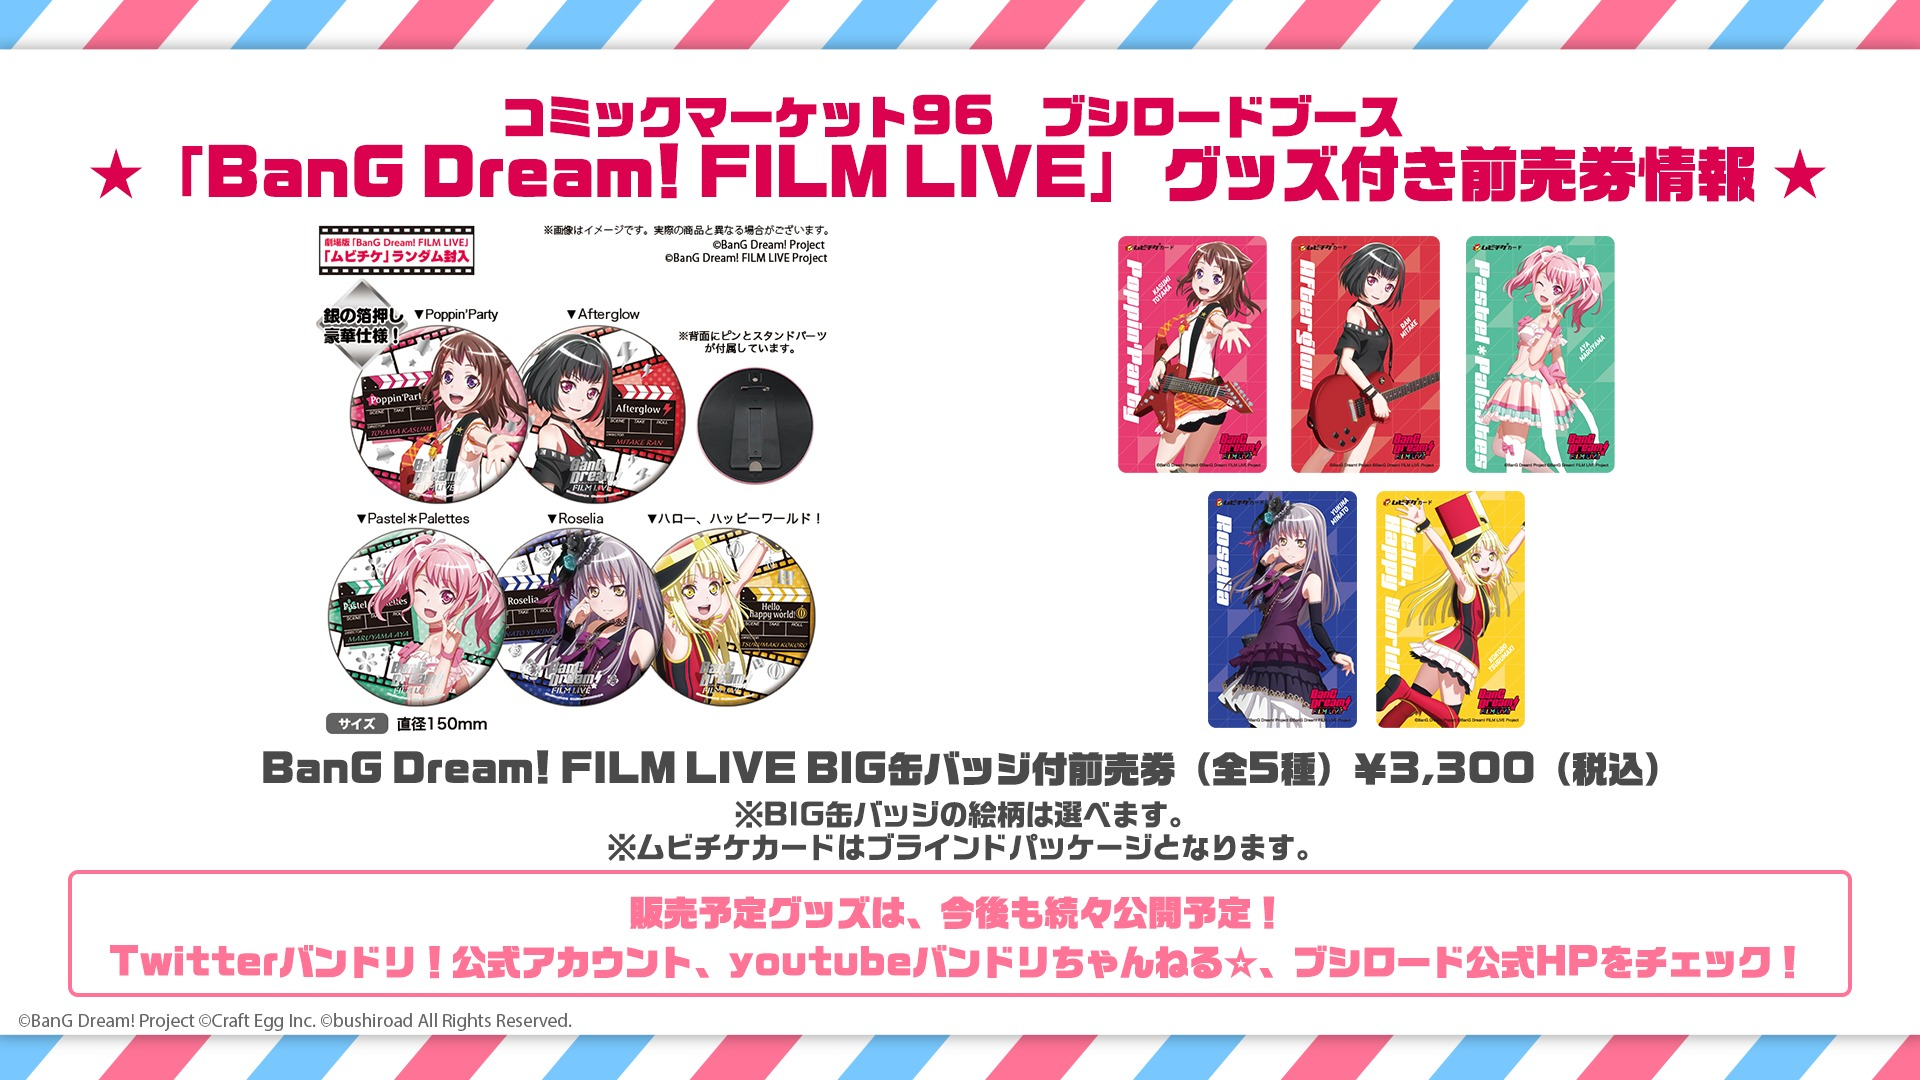 (C)BanG Dream! Project (C)Craft Egg Inc. (C)BanG Dream! FILM LIVE Project (C)bushiroad All Rights Reserved.